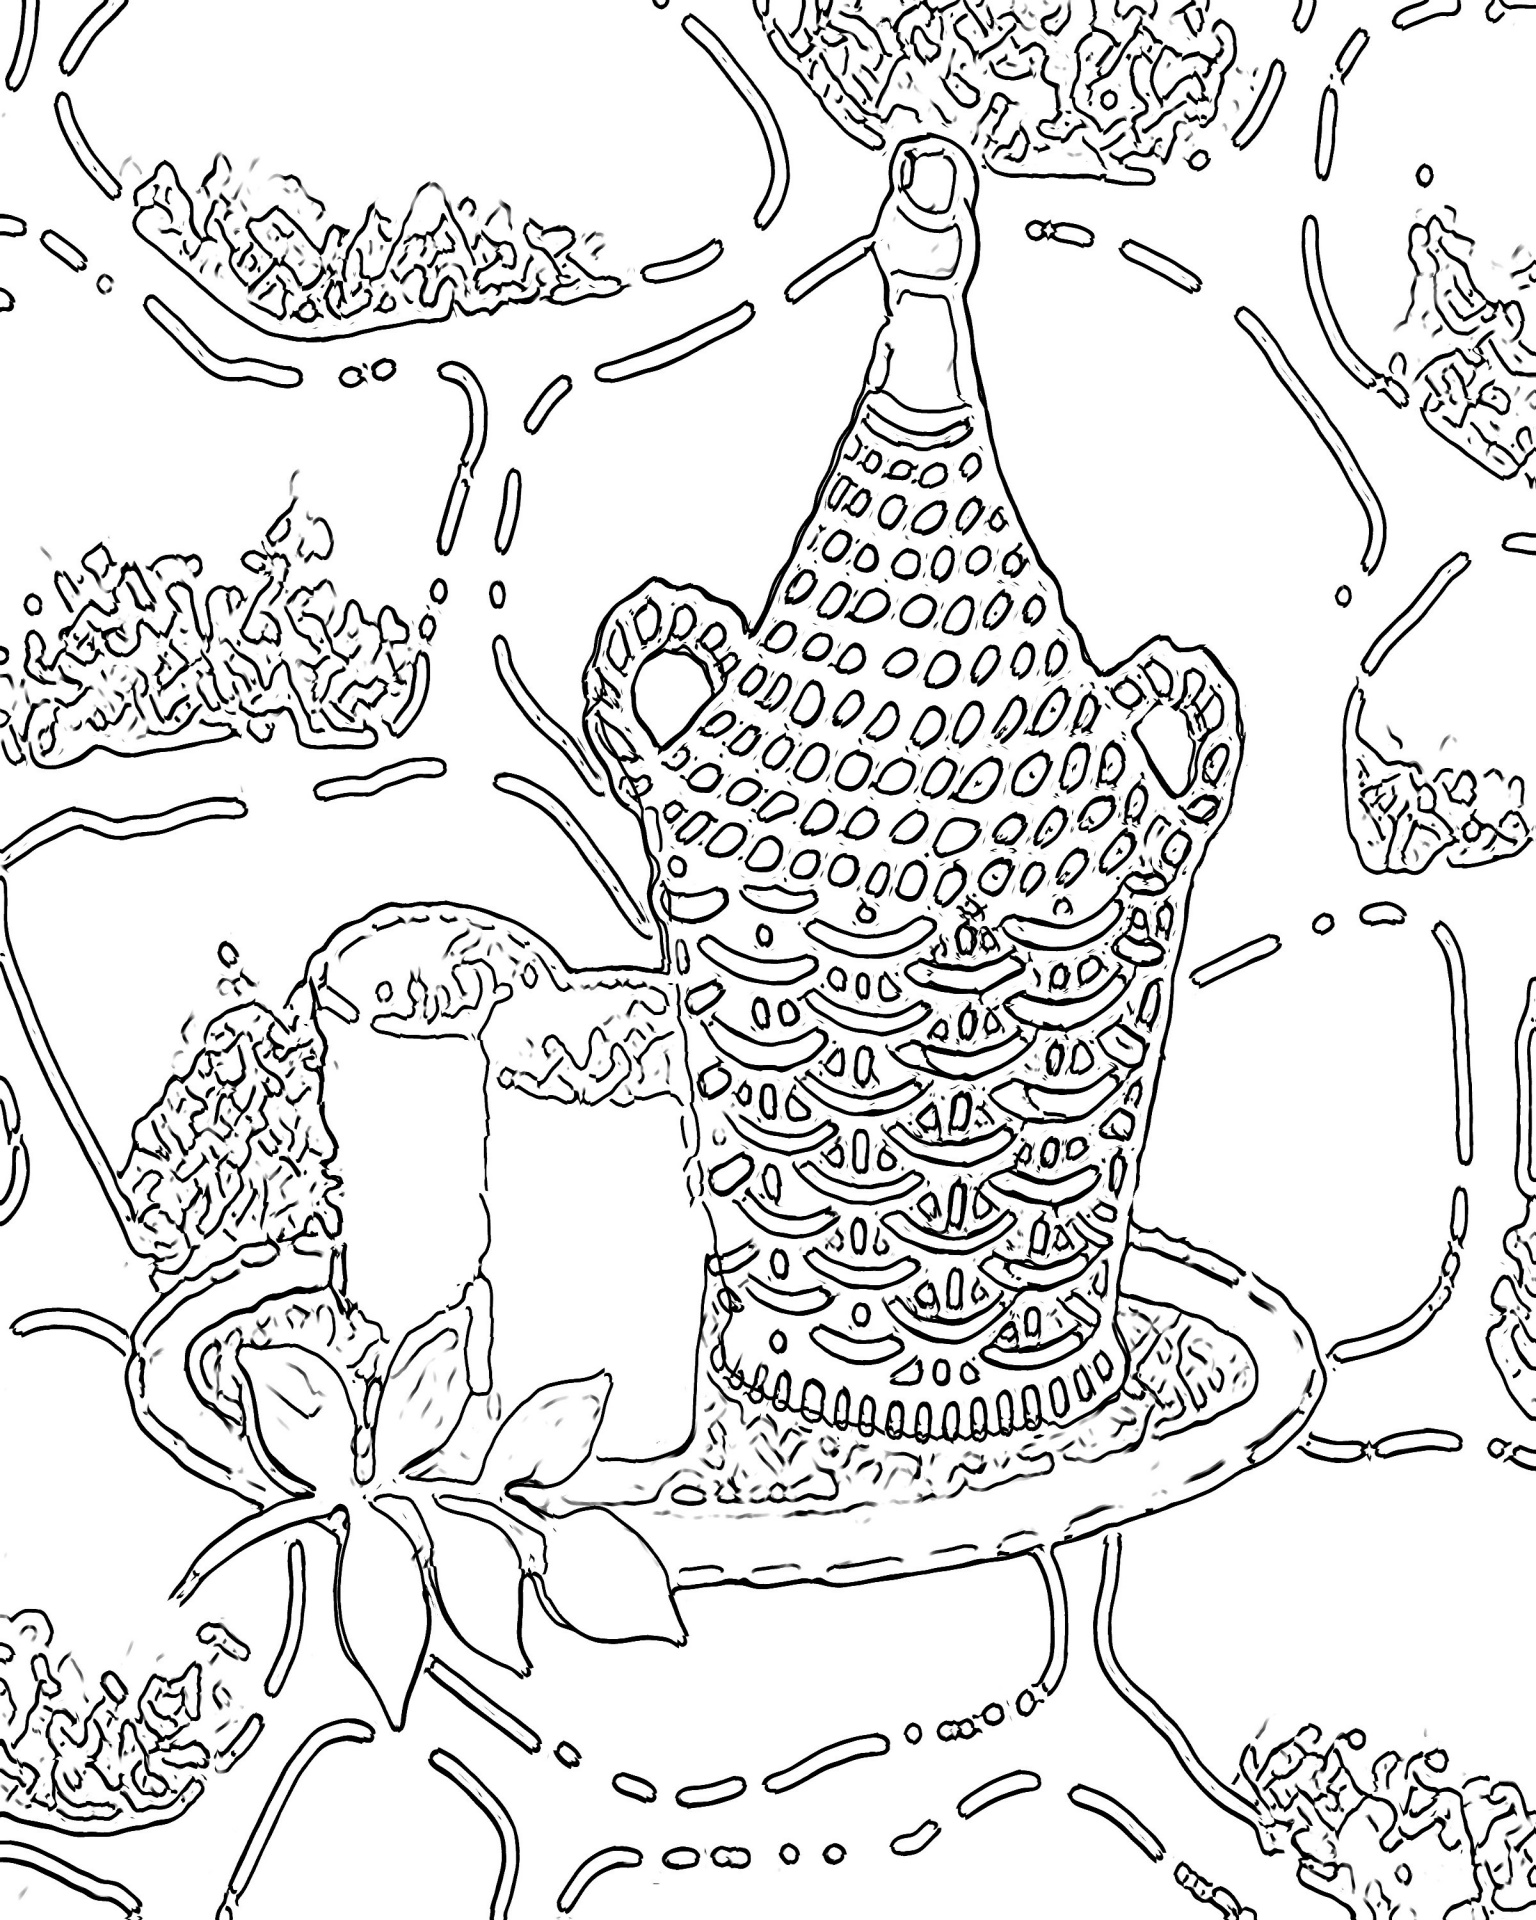 coloring adults pages free printable nature coloring pages for adults at pages adults coloring